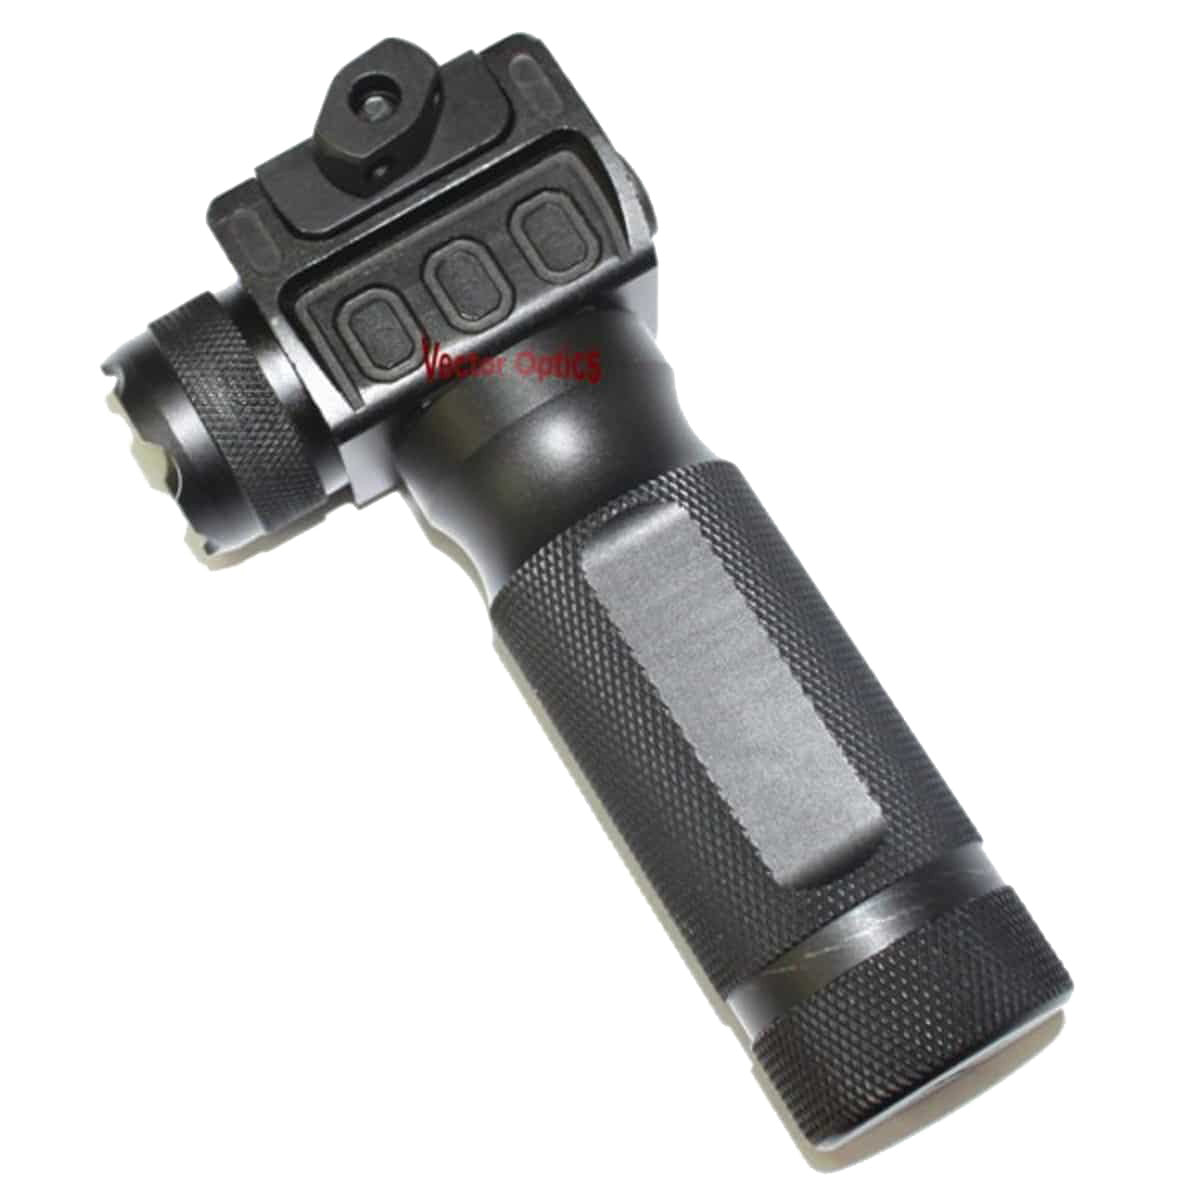 Cyclops Vertical Foregrip